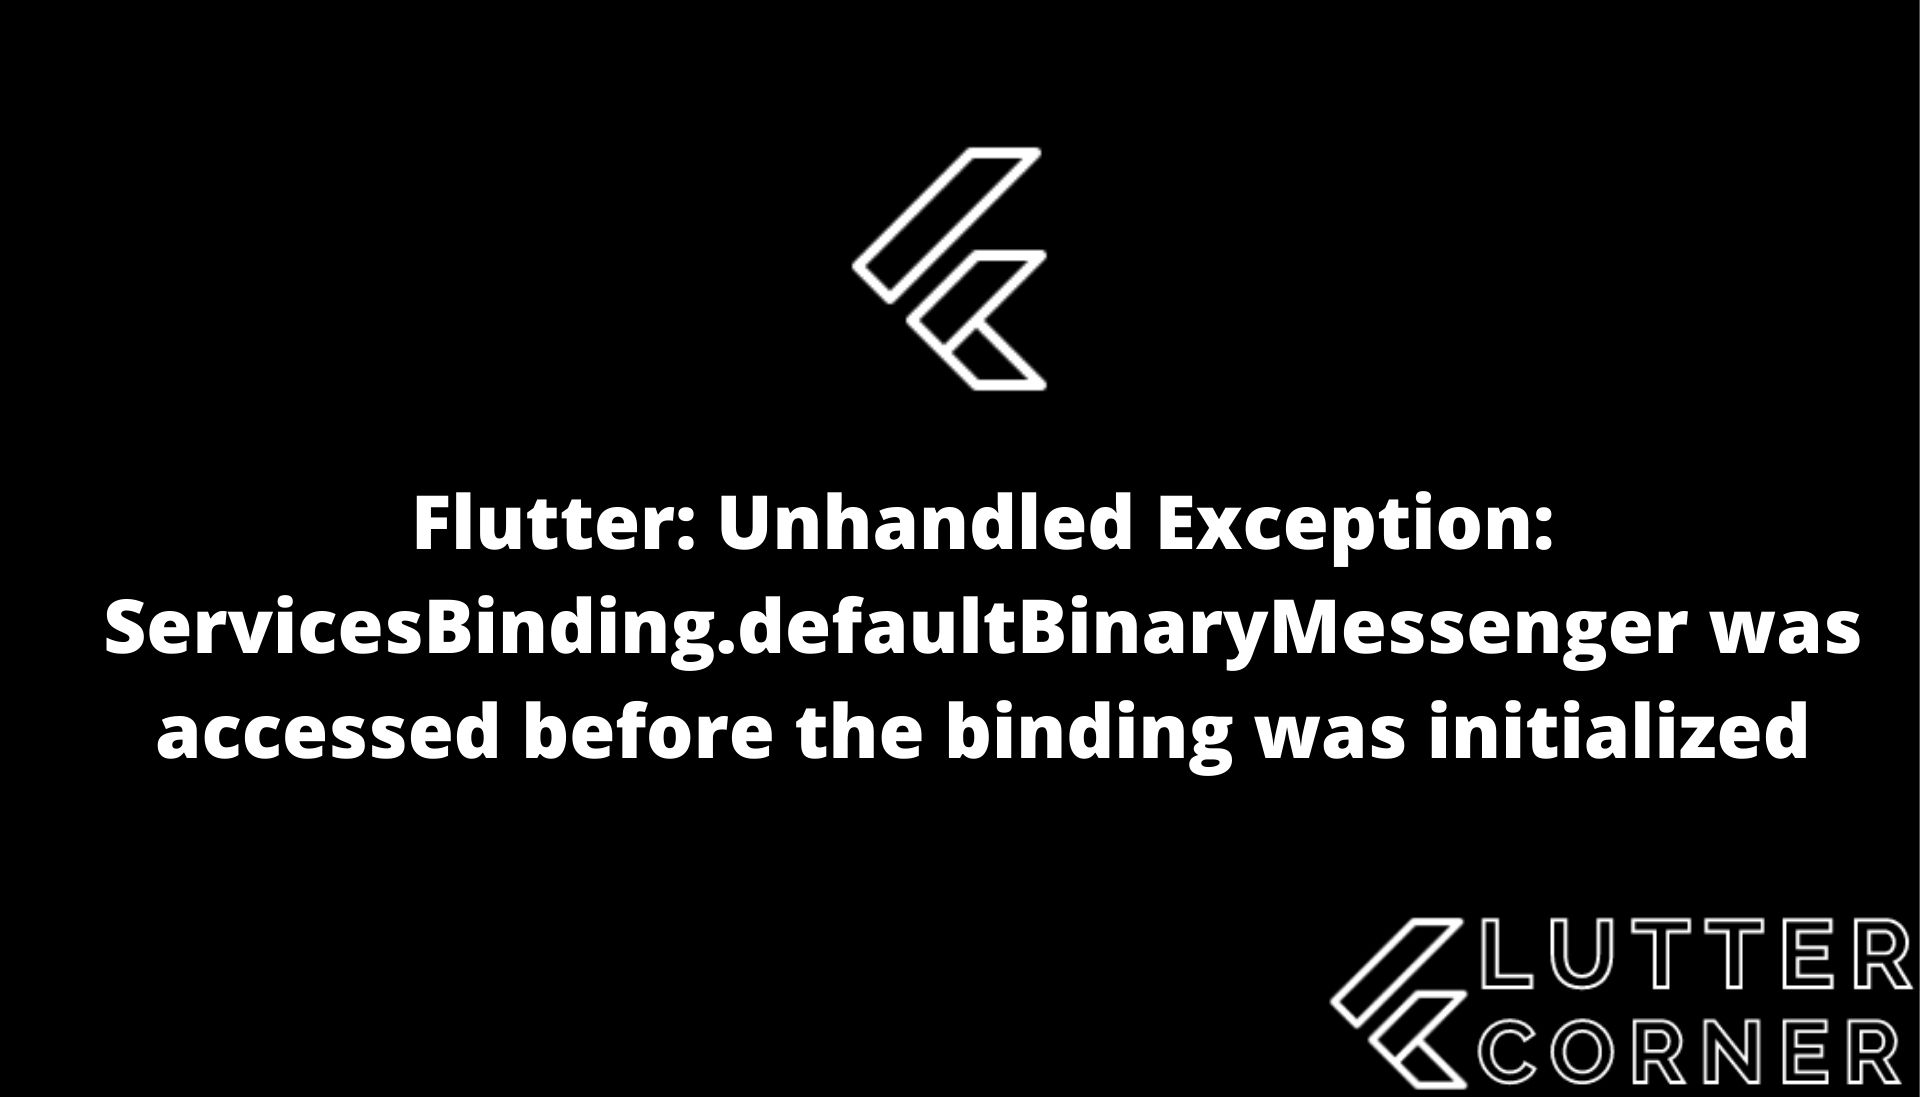 Flutter: Unhandled Exception: ServicesBinding.defaultBinaryMessenger was accessed before the binding was initialized